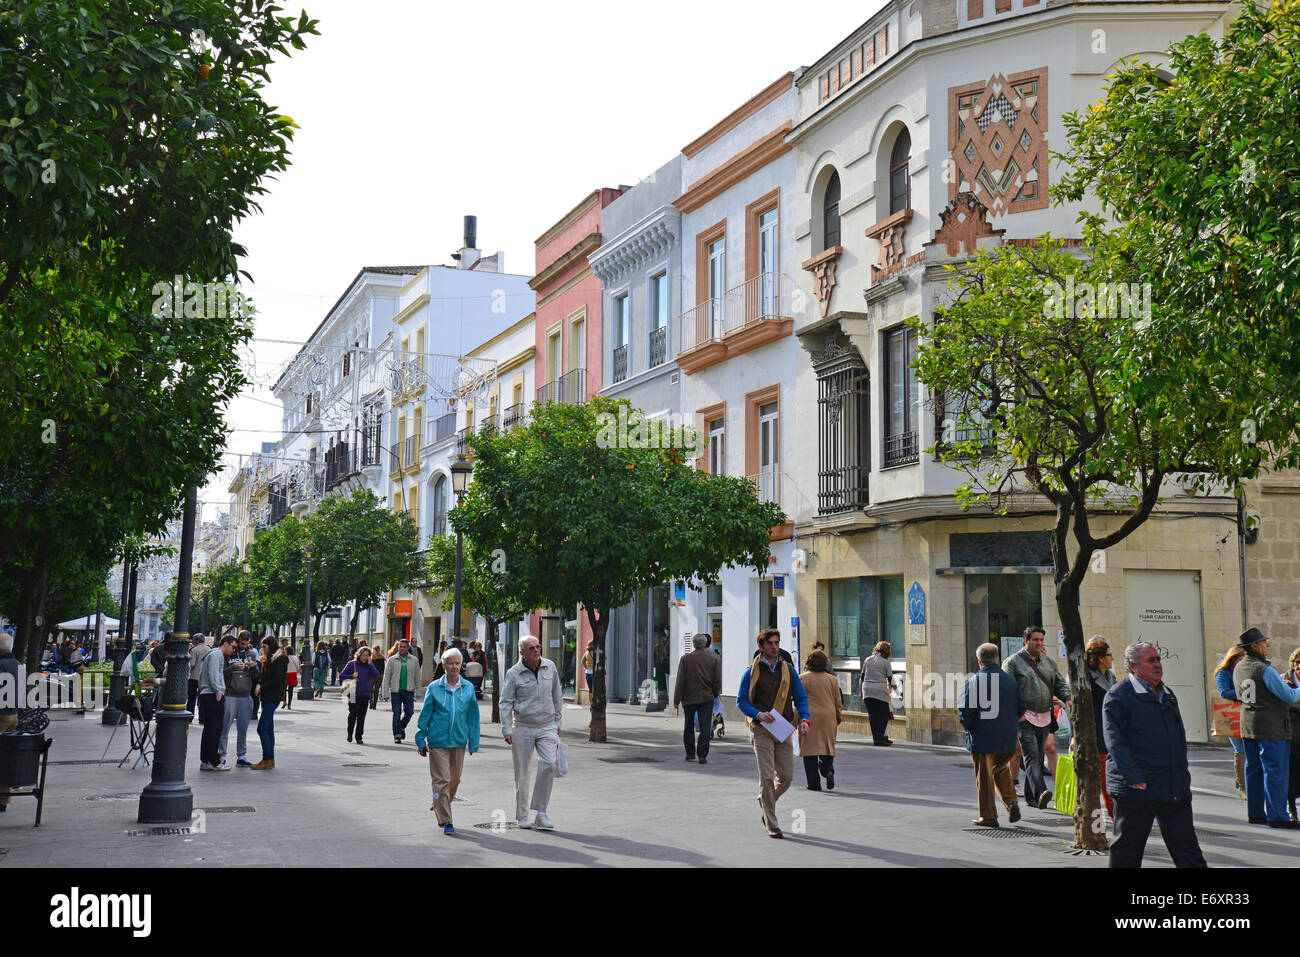 Cadiz shops stock photos cadiz shops stock images alamy for Calle prado jerez 55 navacerrada